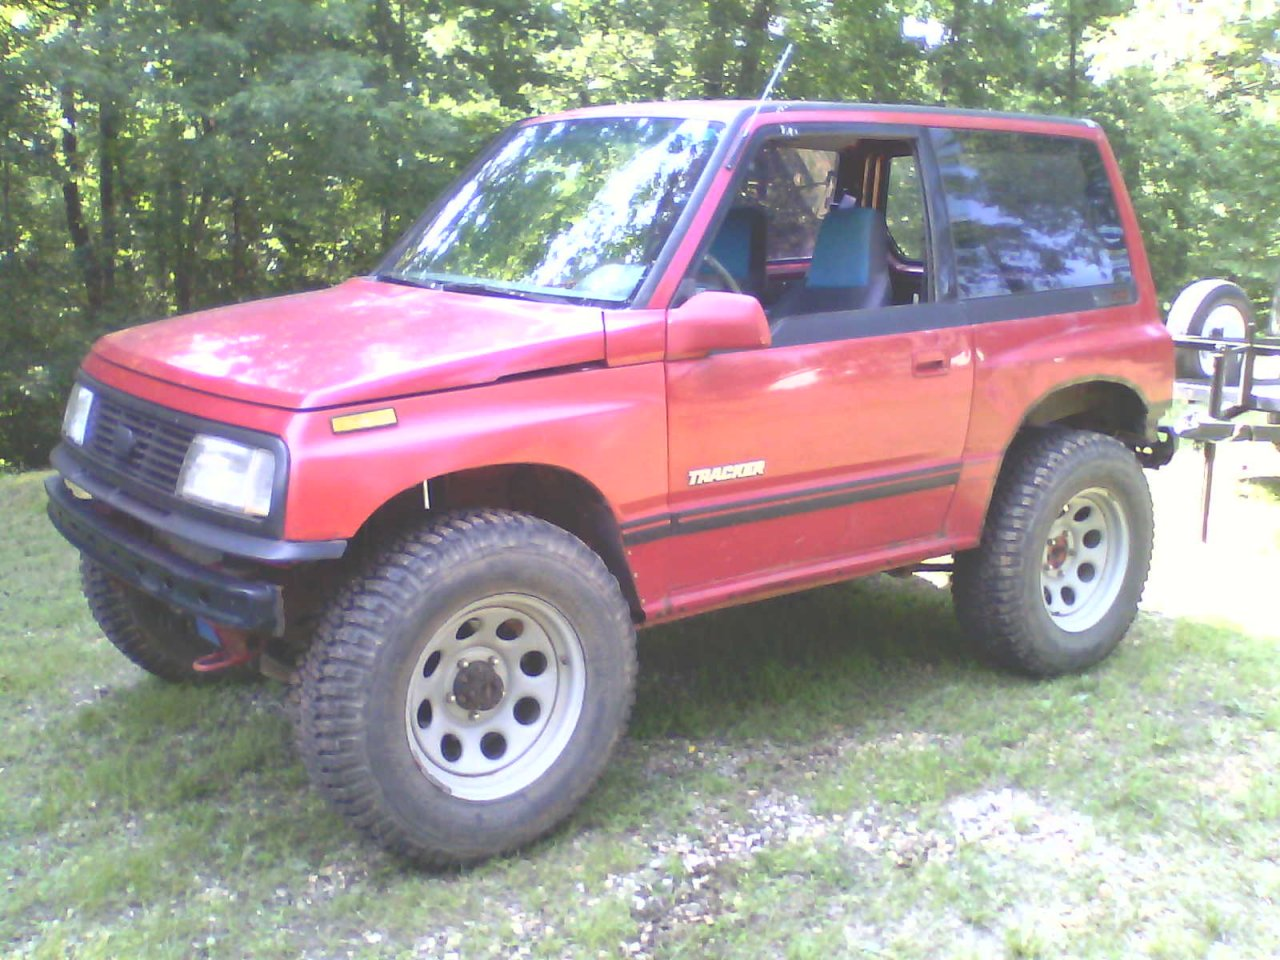 Chevrolet Tracker For Sale For Sale - 1989 Geo Tracker 4x4 on 32s (Georgia) | IH8MUD Forum